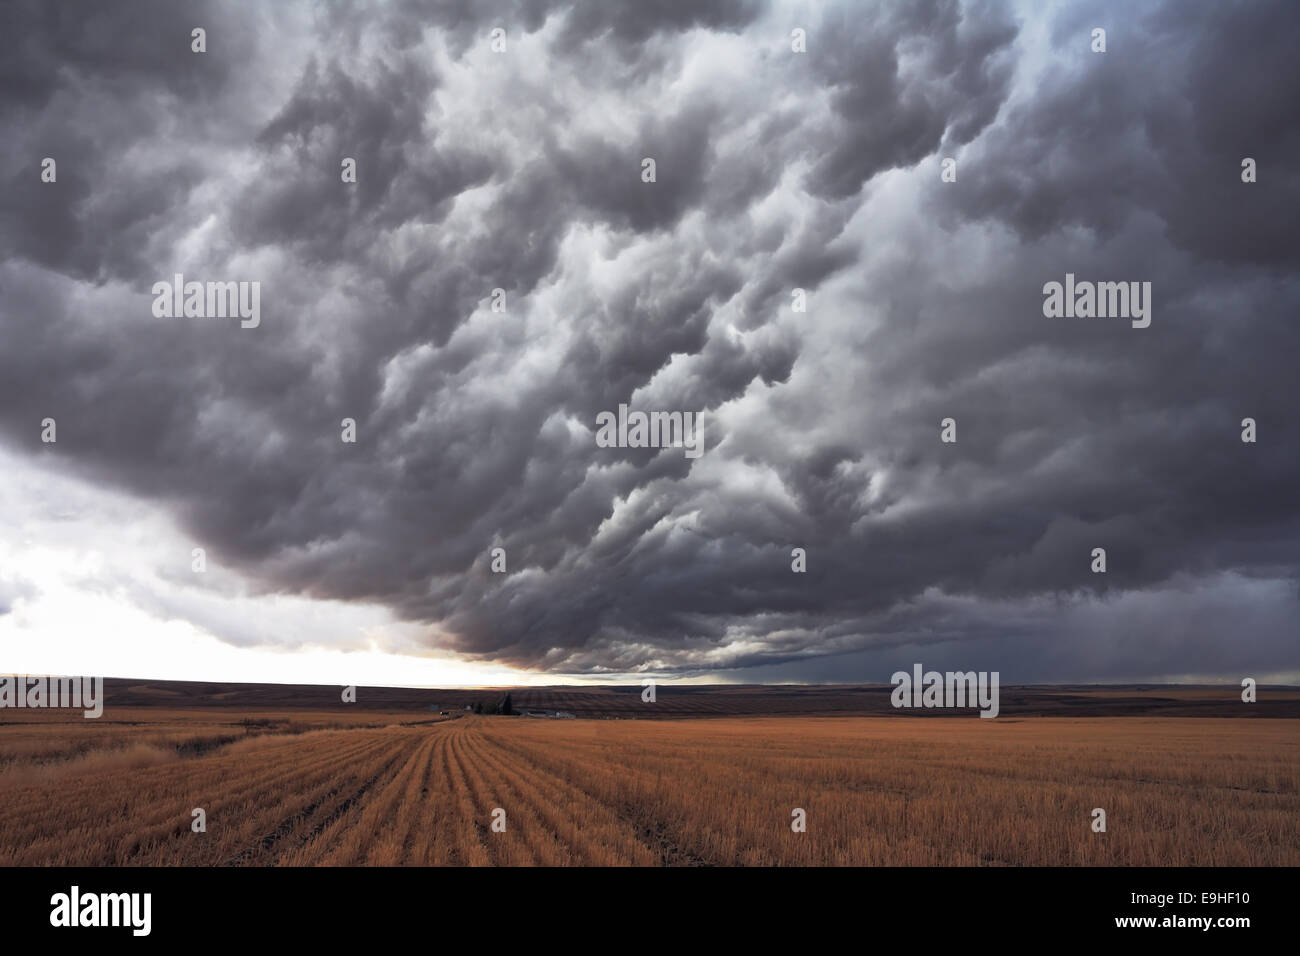 The enormous storm cloud - Stock Image